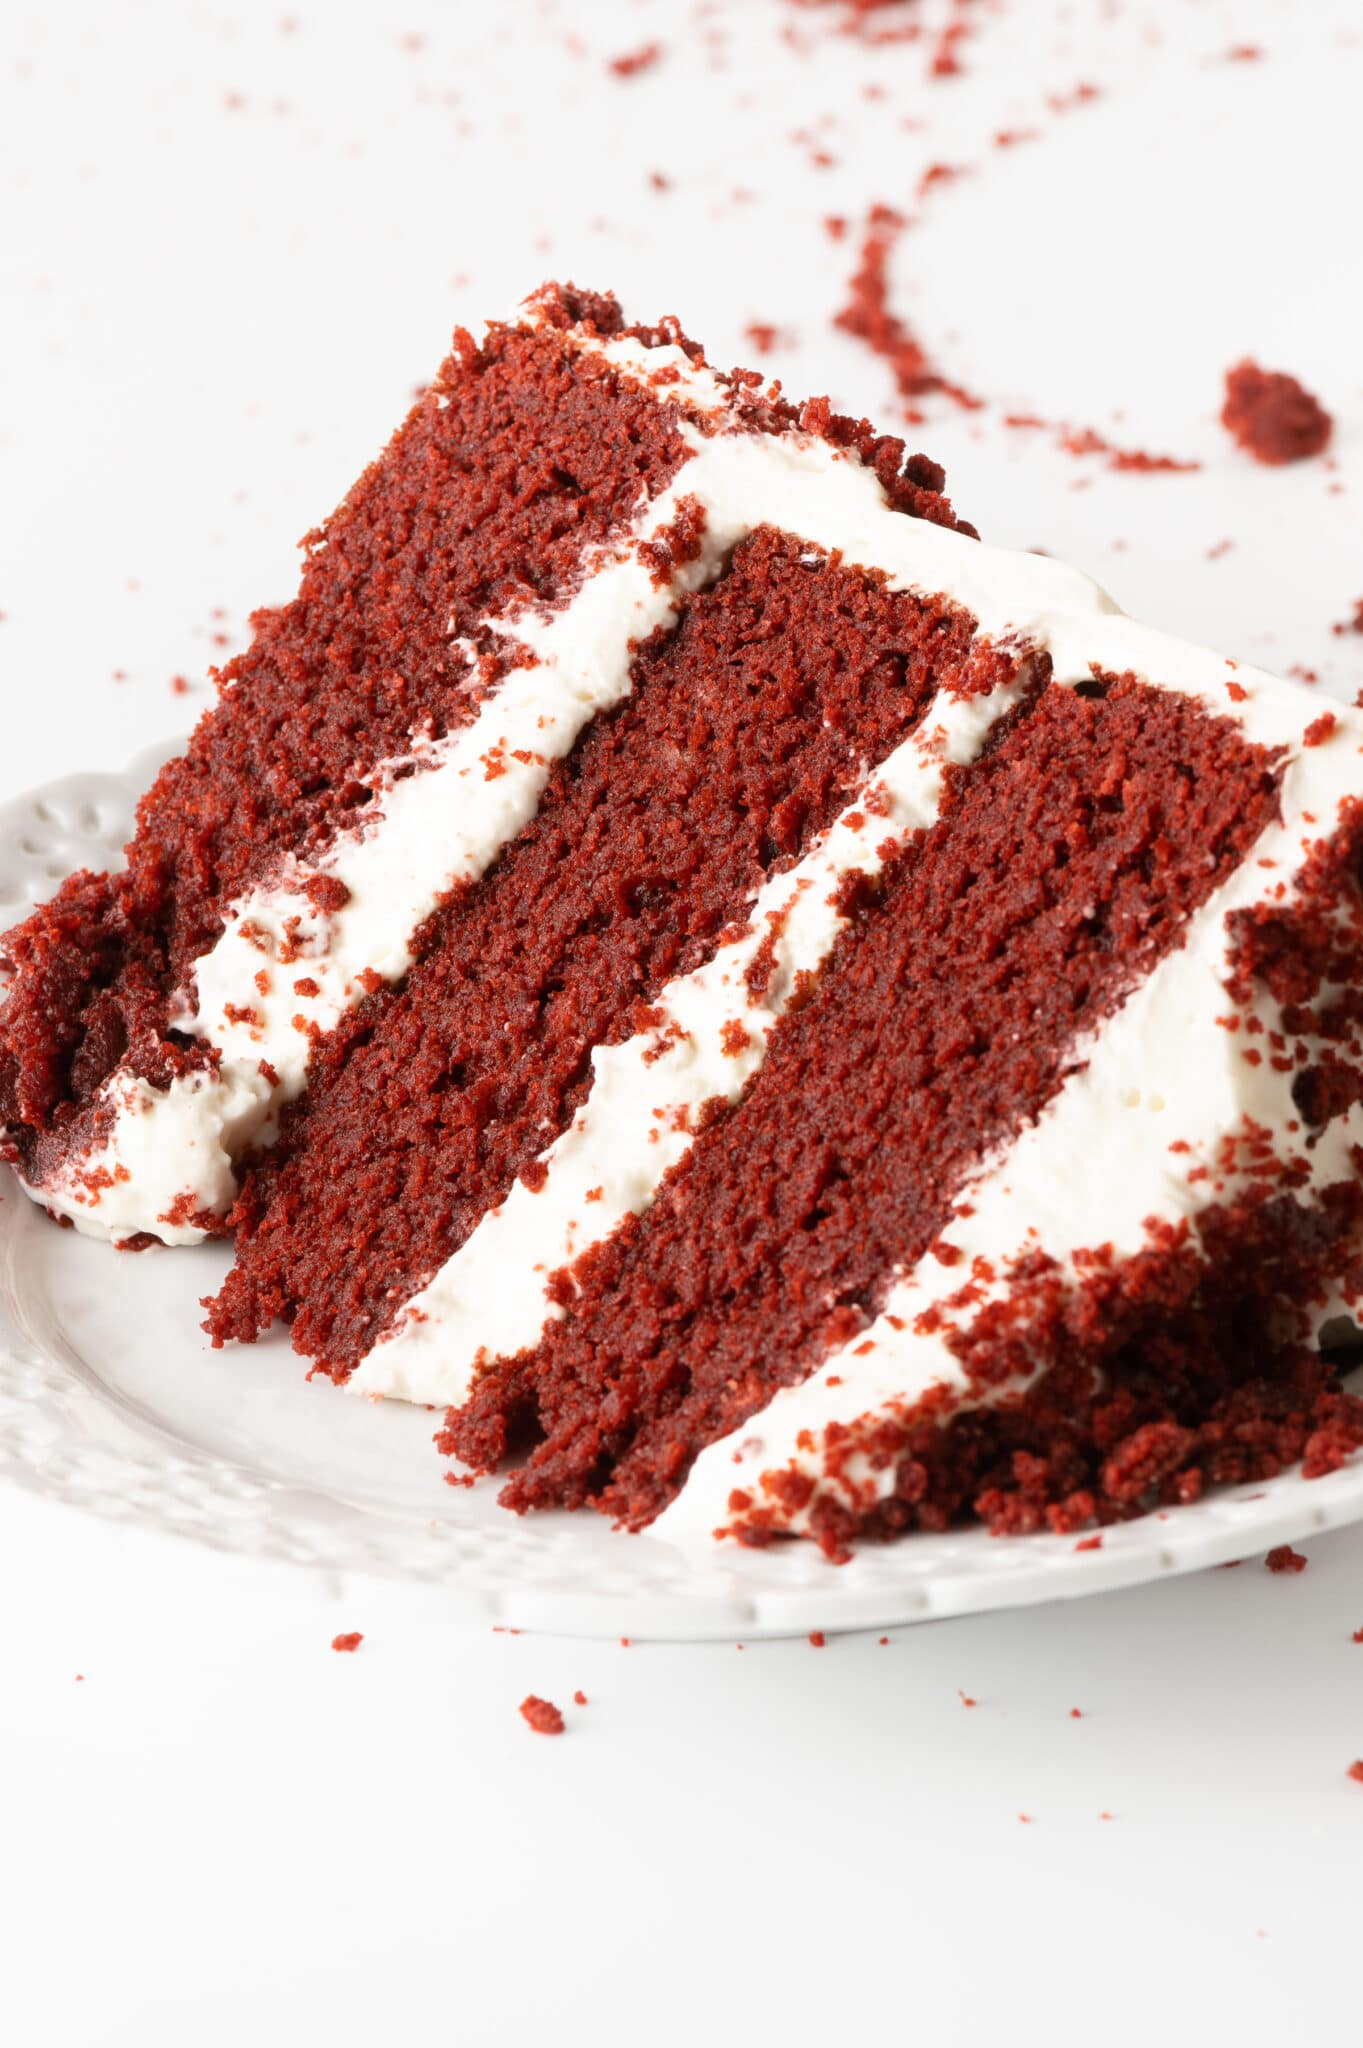 A single slice of bright red maroon red velvet cake with bright white layers of frosting.  The cake is set on a white texture plate and set against a bright white tabletop with red cake crumbs scattered around the plate.